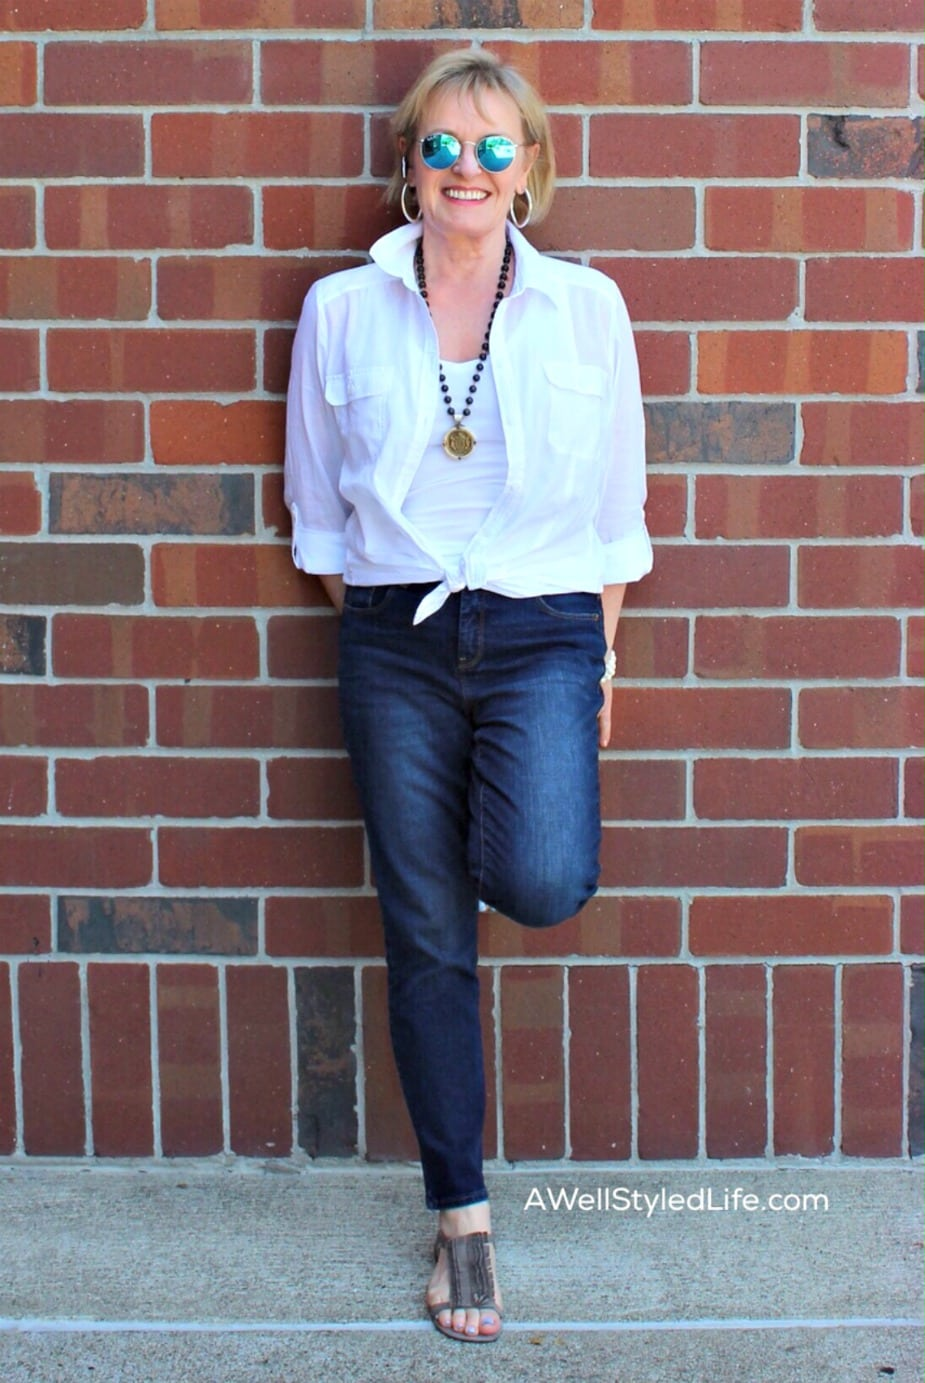 fashion blogger jennifer connolly wearing white shirt tied at the waist